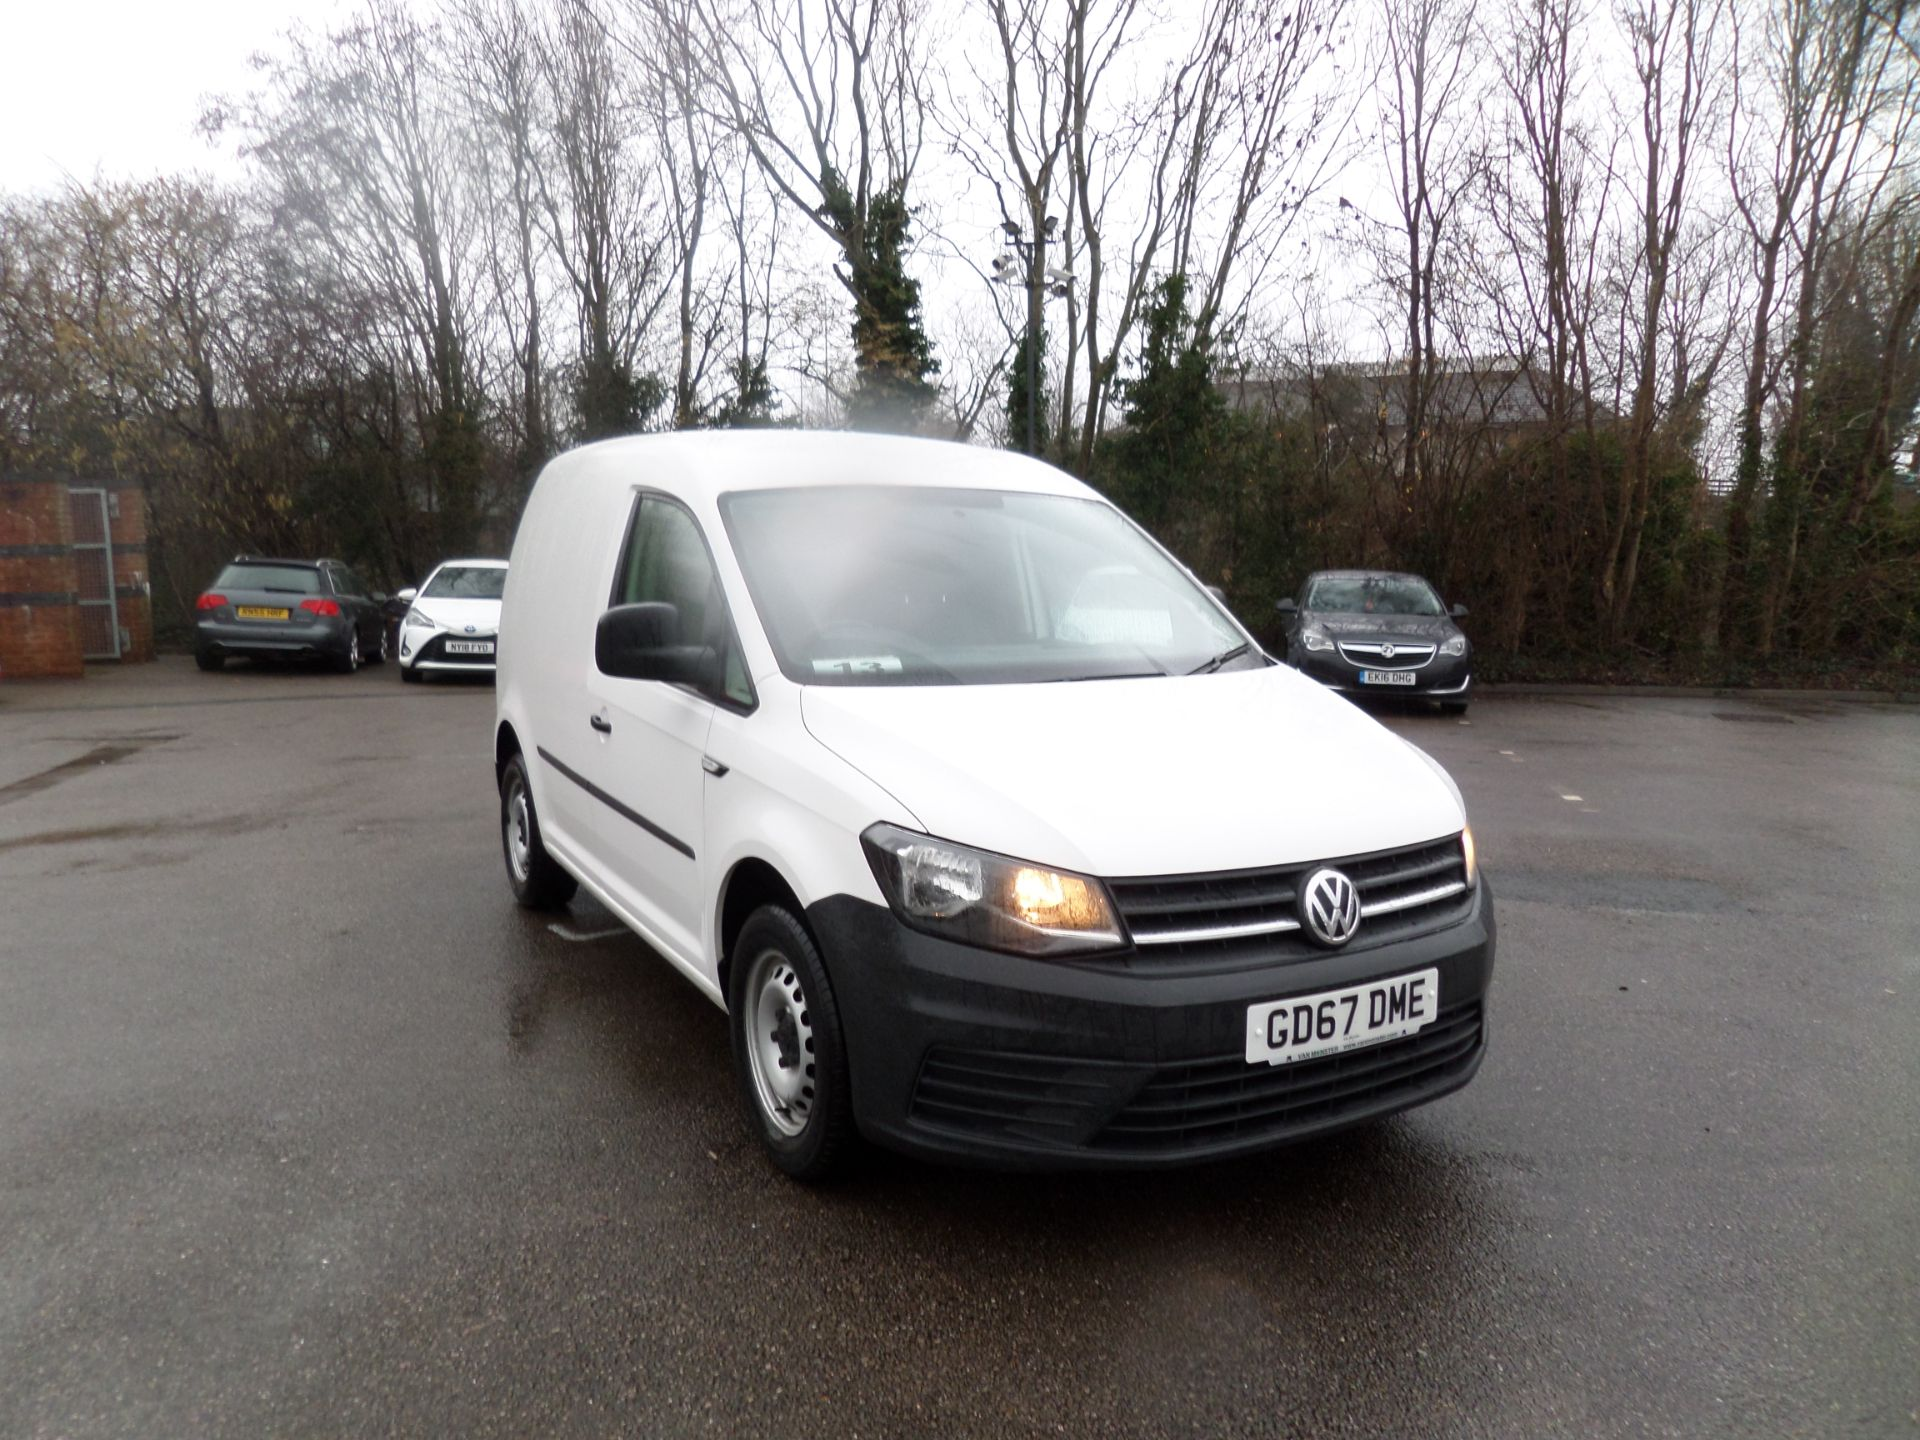 2017 Volkswagen Caddy 2.0 Tdi Bluemotion Tech 102Ps Startline Van Euro 6 (GD67DME) Thumbnail 1